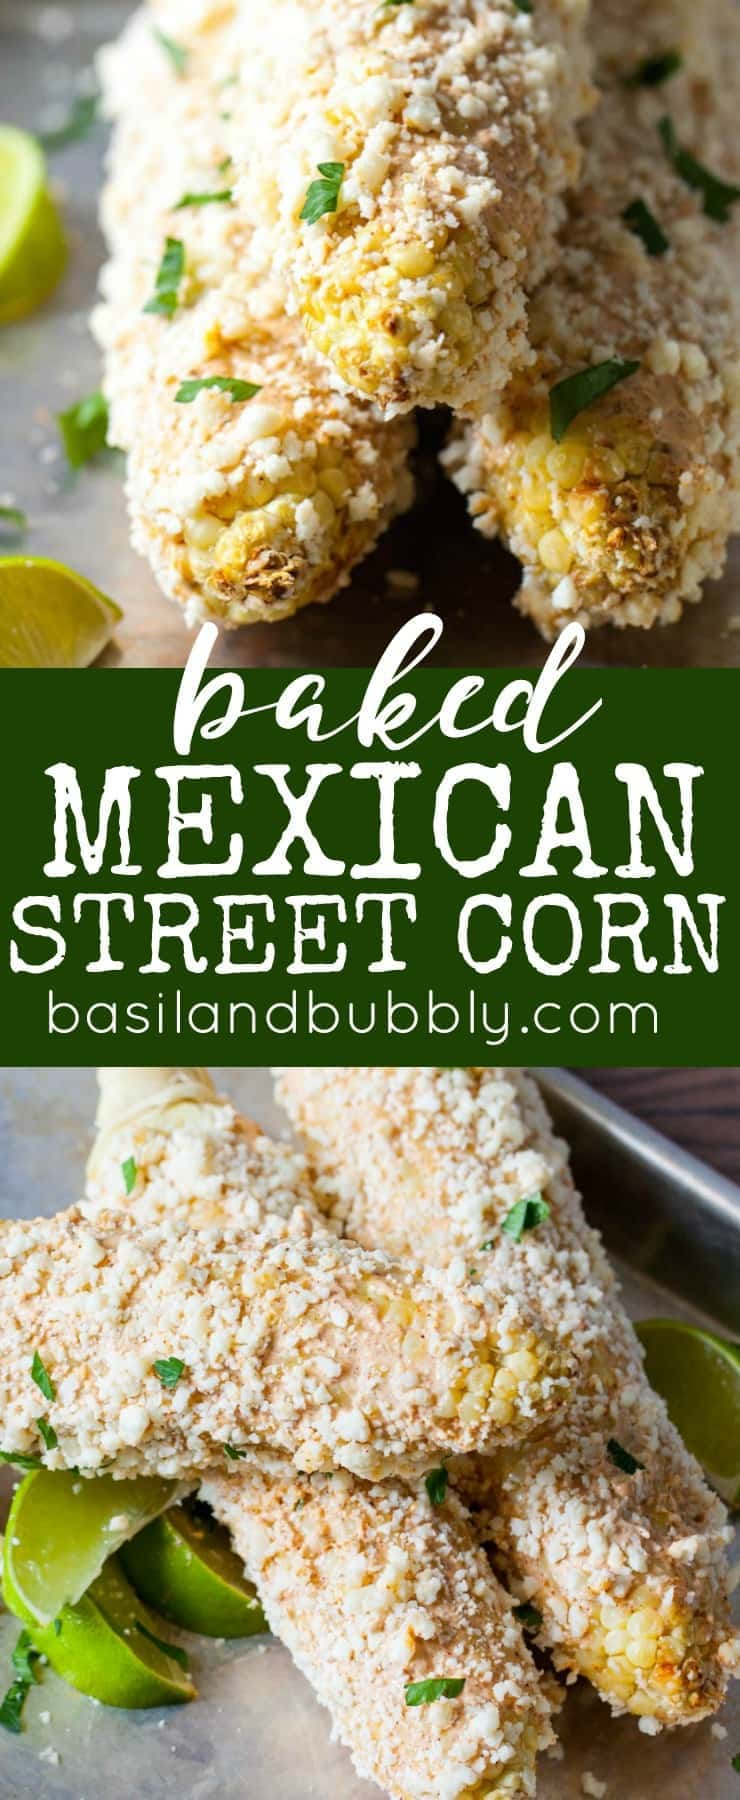 Baked Mexican Street Corn Recipe